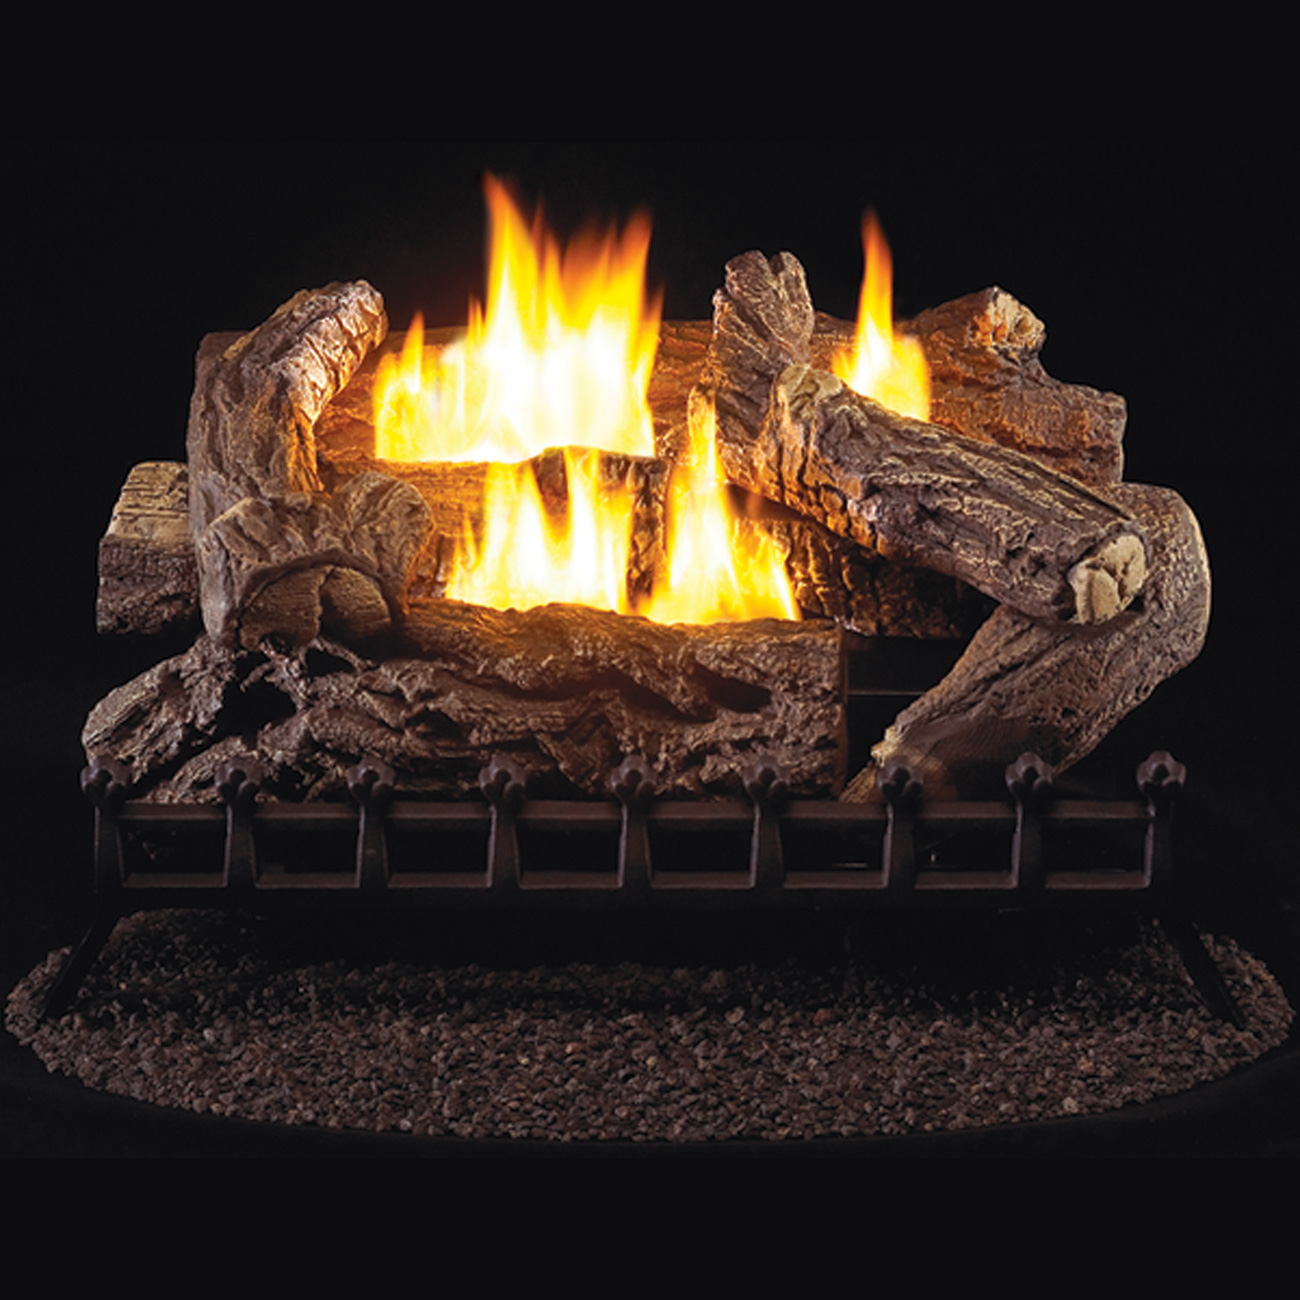 30 Ventless Natural Gas Log Set